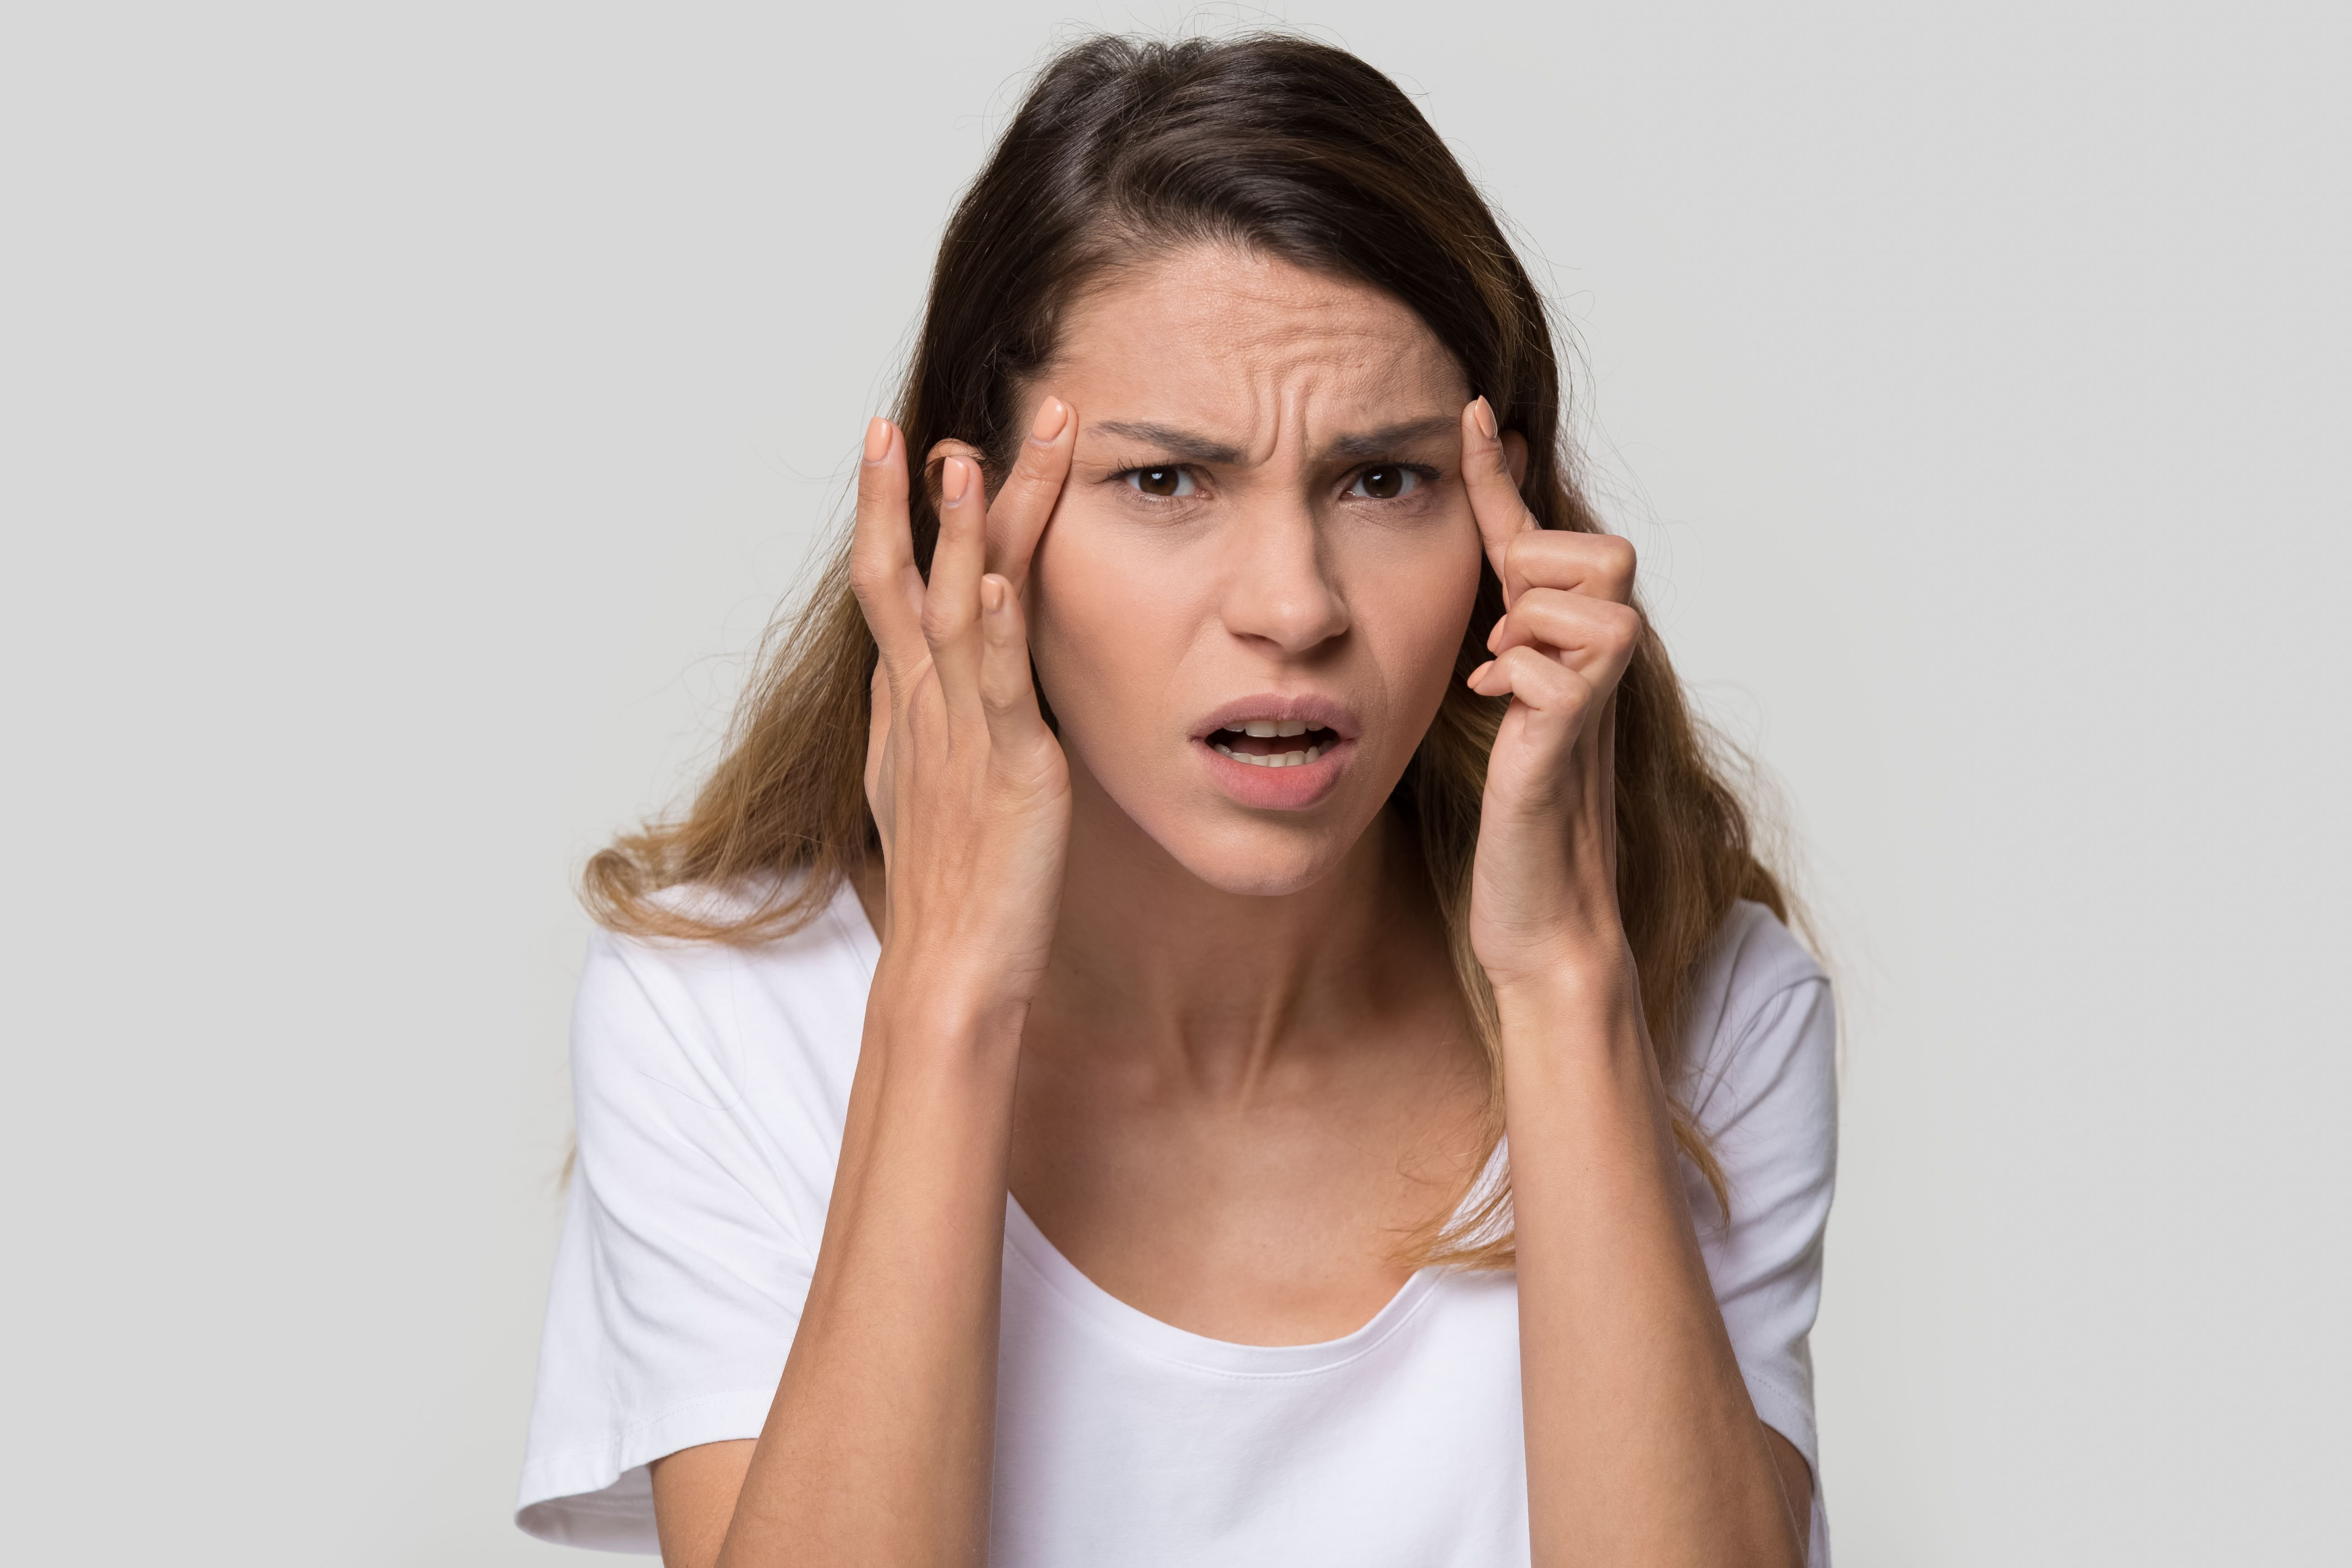 A frustrated woman | Source: Shutterstock